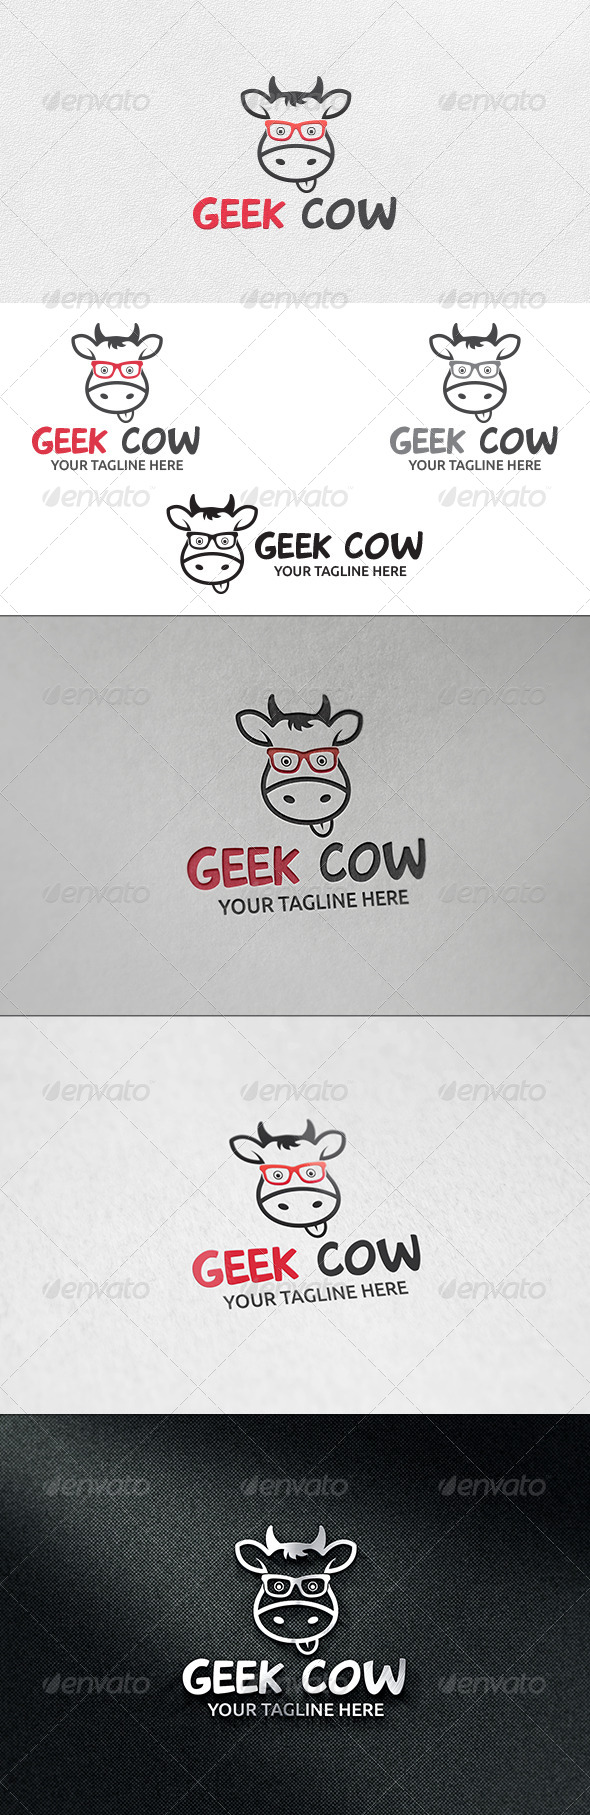 GraphicRiver Geek Cow Logo Template 6496294